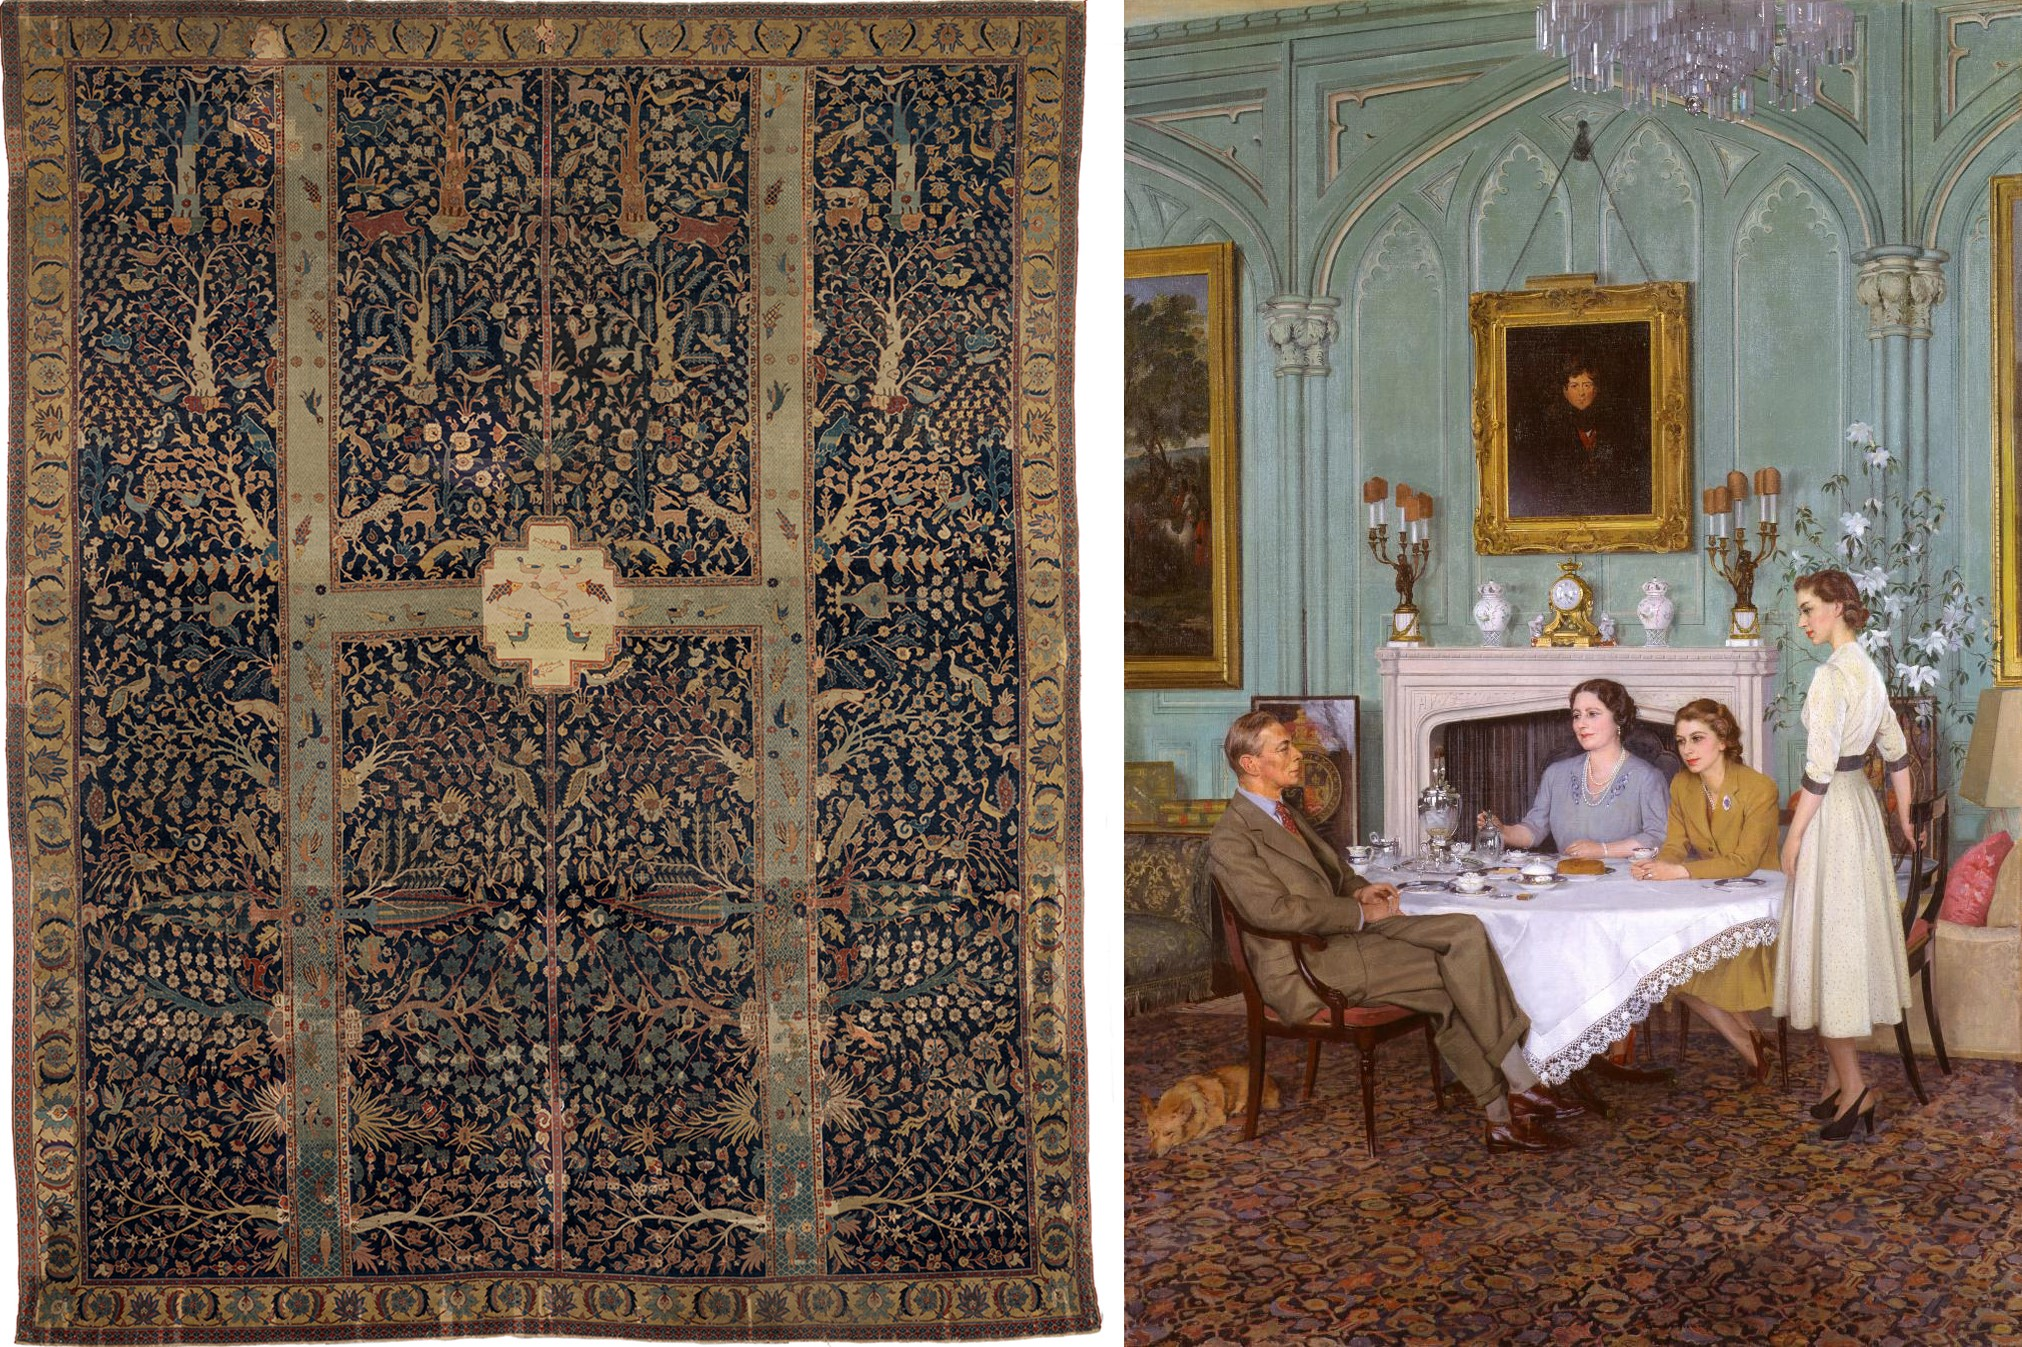 FOR TUDORS AND GARDEN PARADISE BLOG POST ONLY - Wagner Garden Carpet + Conversation Piece at the Royal Lodge